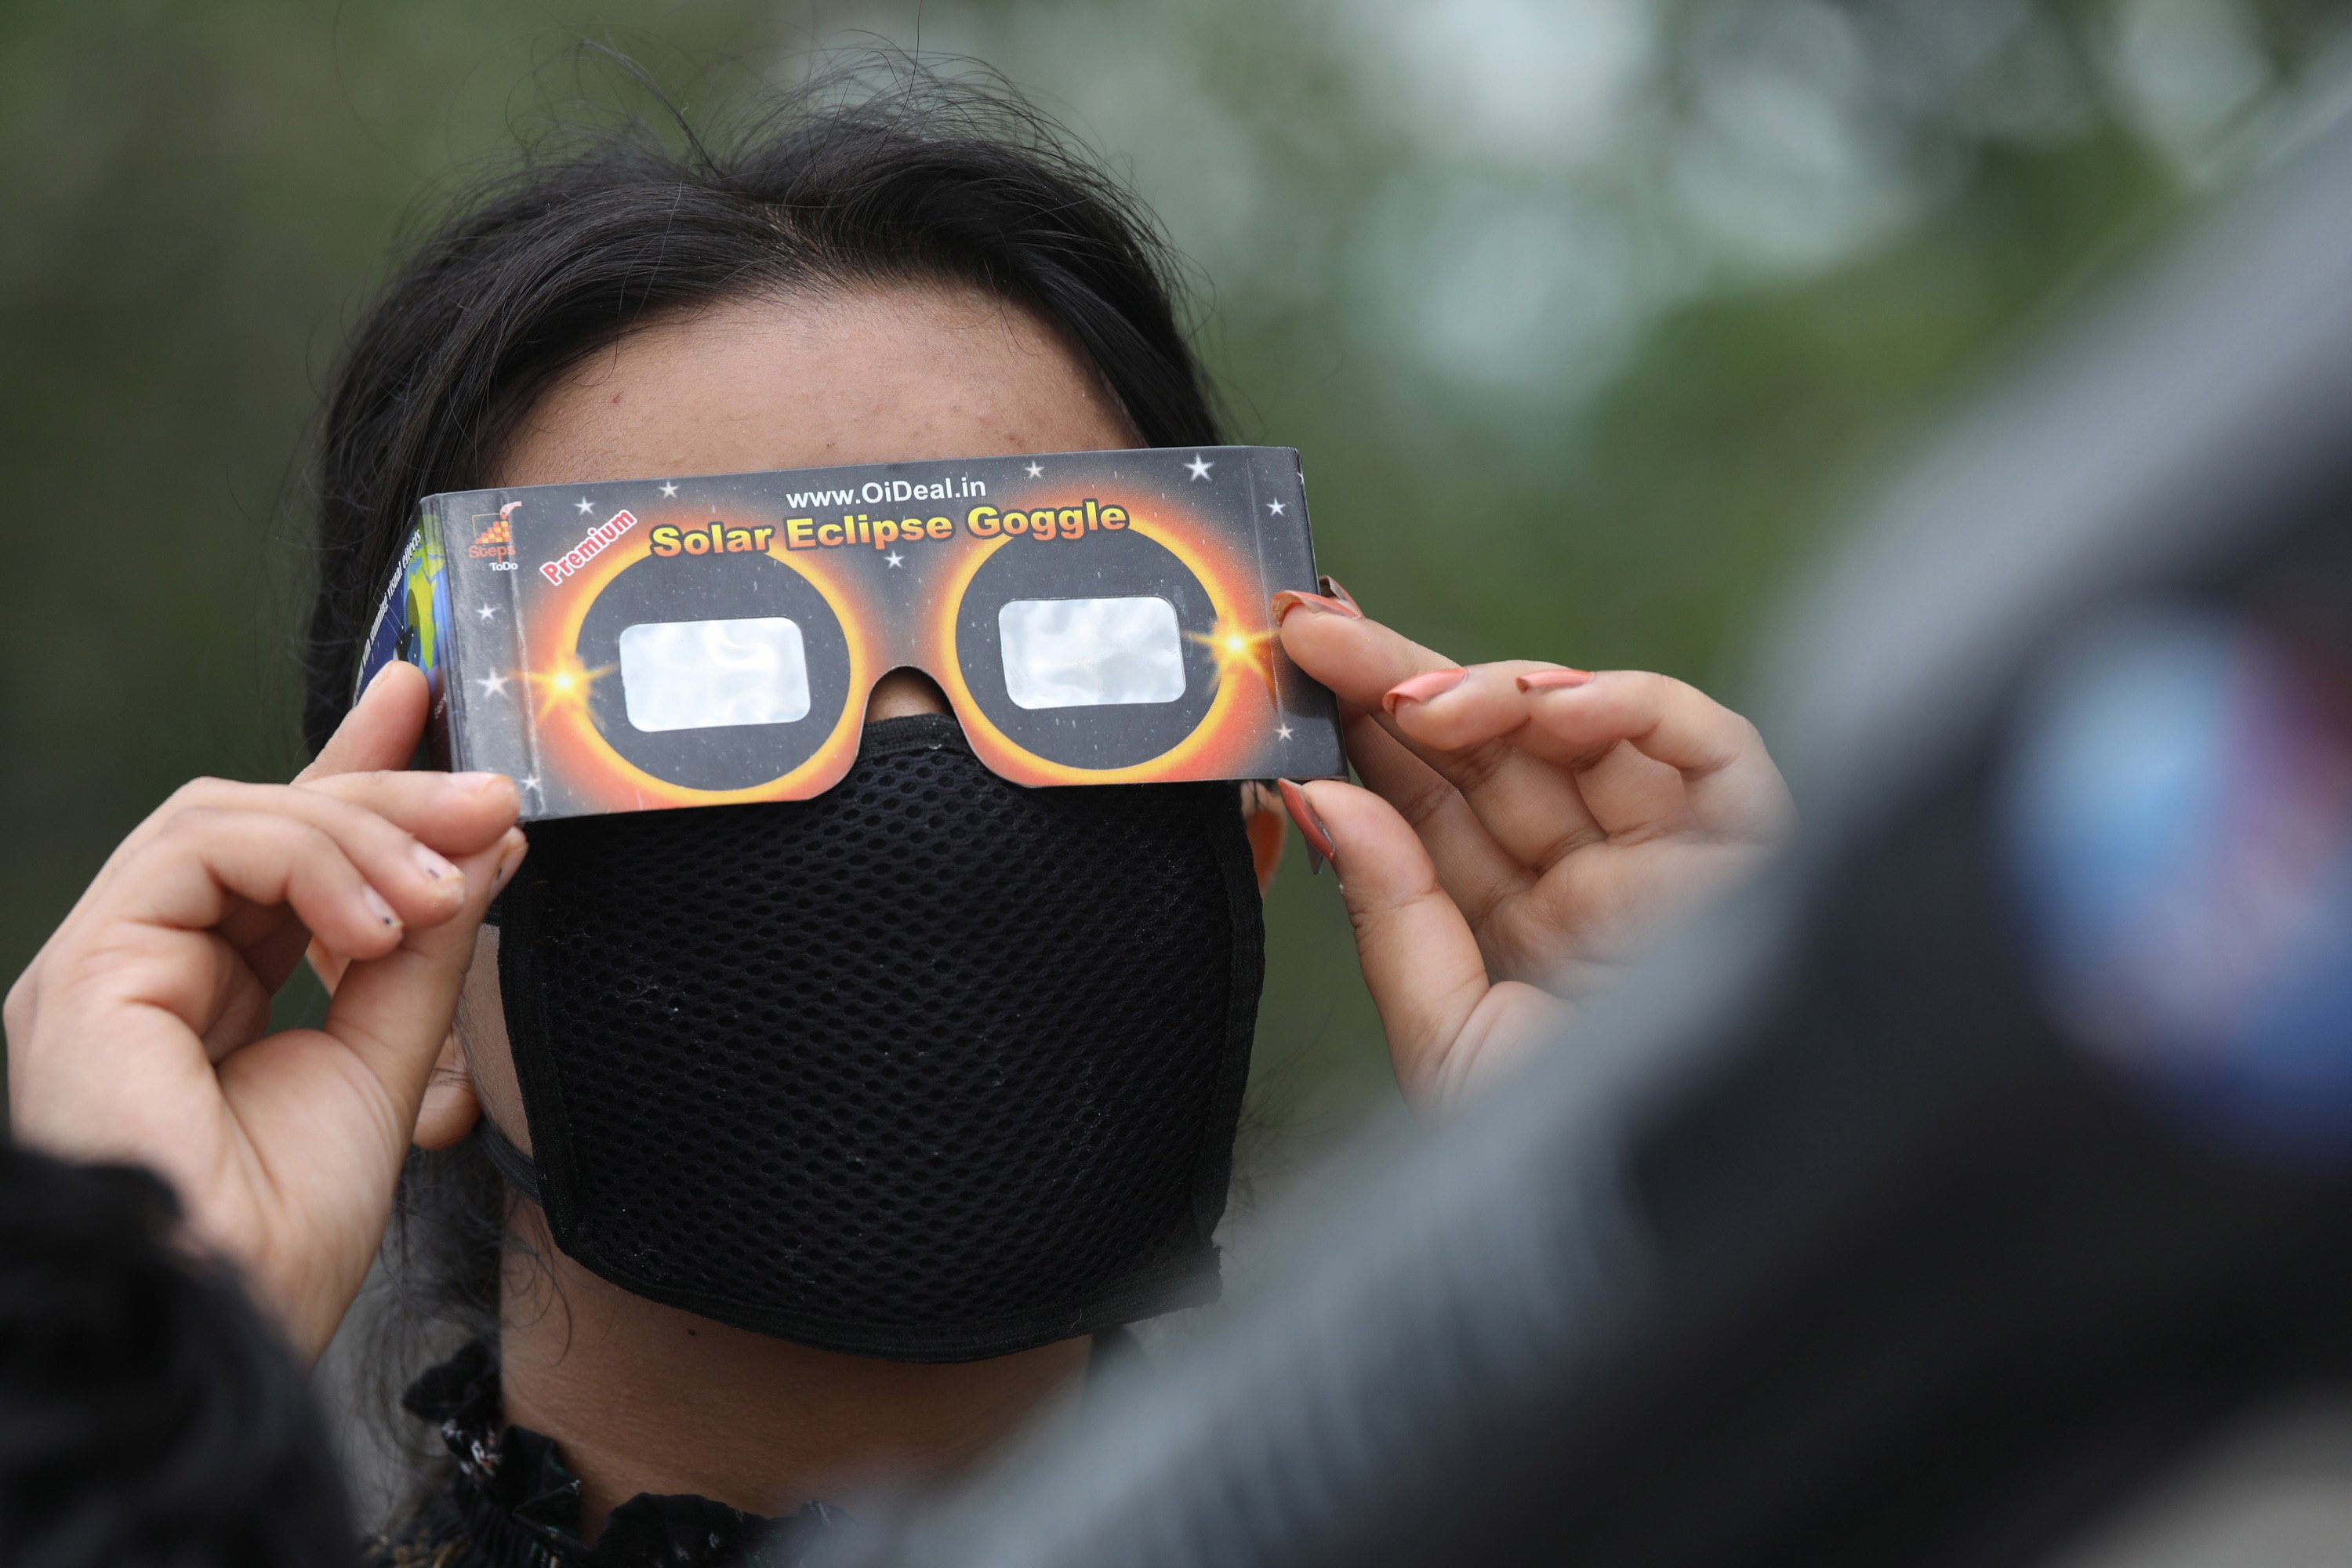 An Indian youngster wearing a face mask tries to get a glimpse of an annular partial solar eclipse using special protective goggles during cloudy weather in the village of Sakoh, near Dharamsala, northern India, June 21, 2020. (EPA Photo)